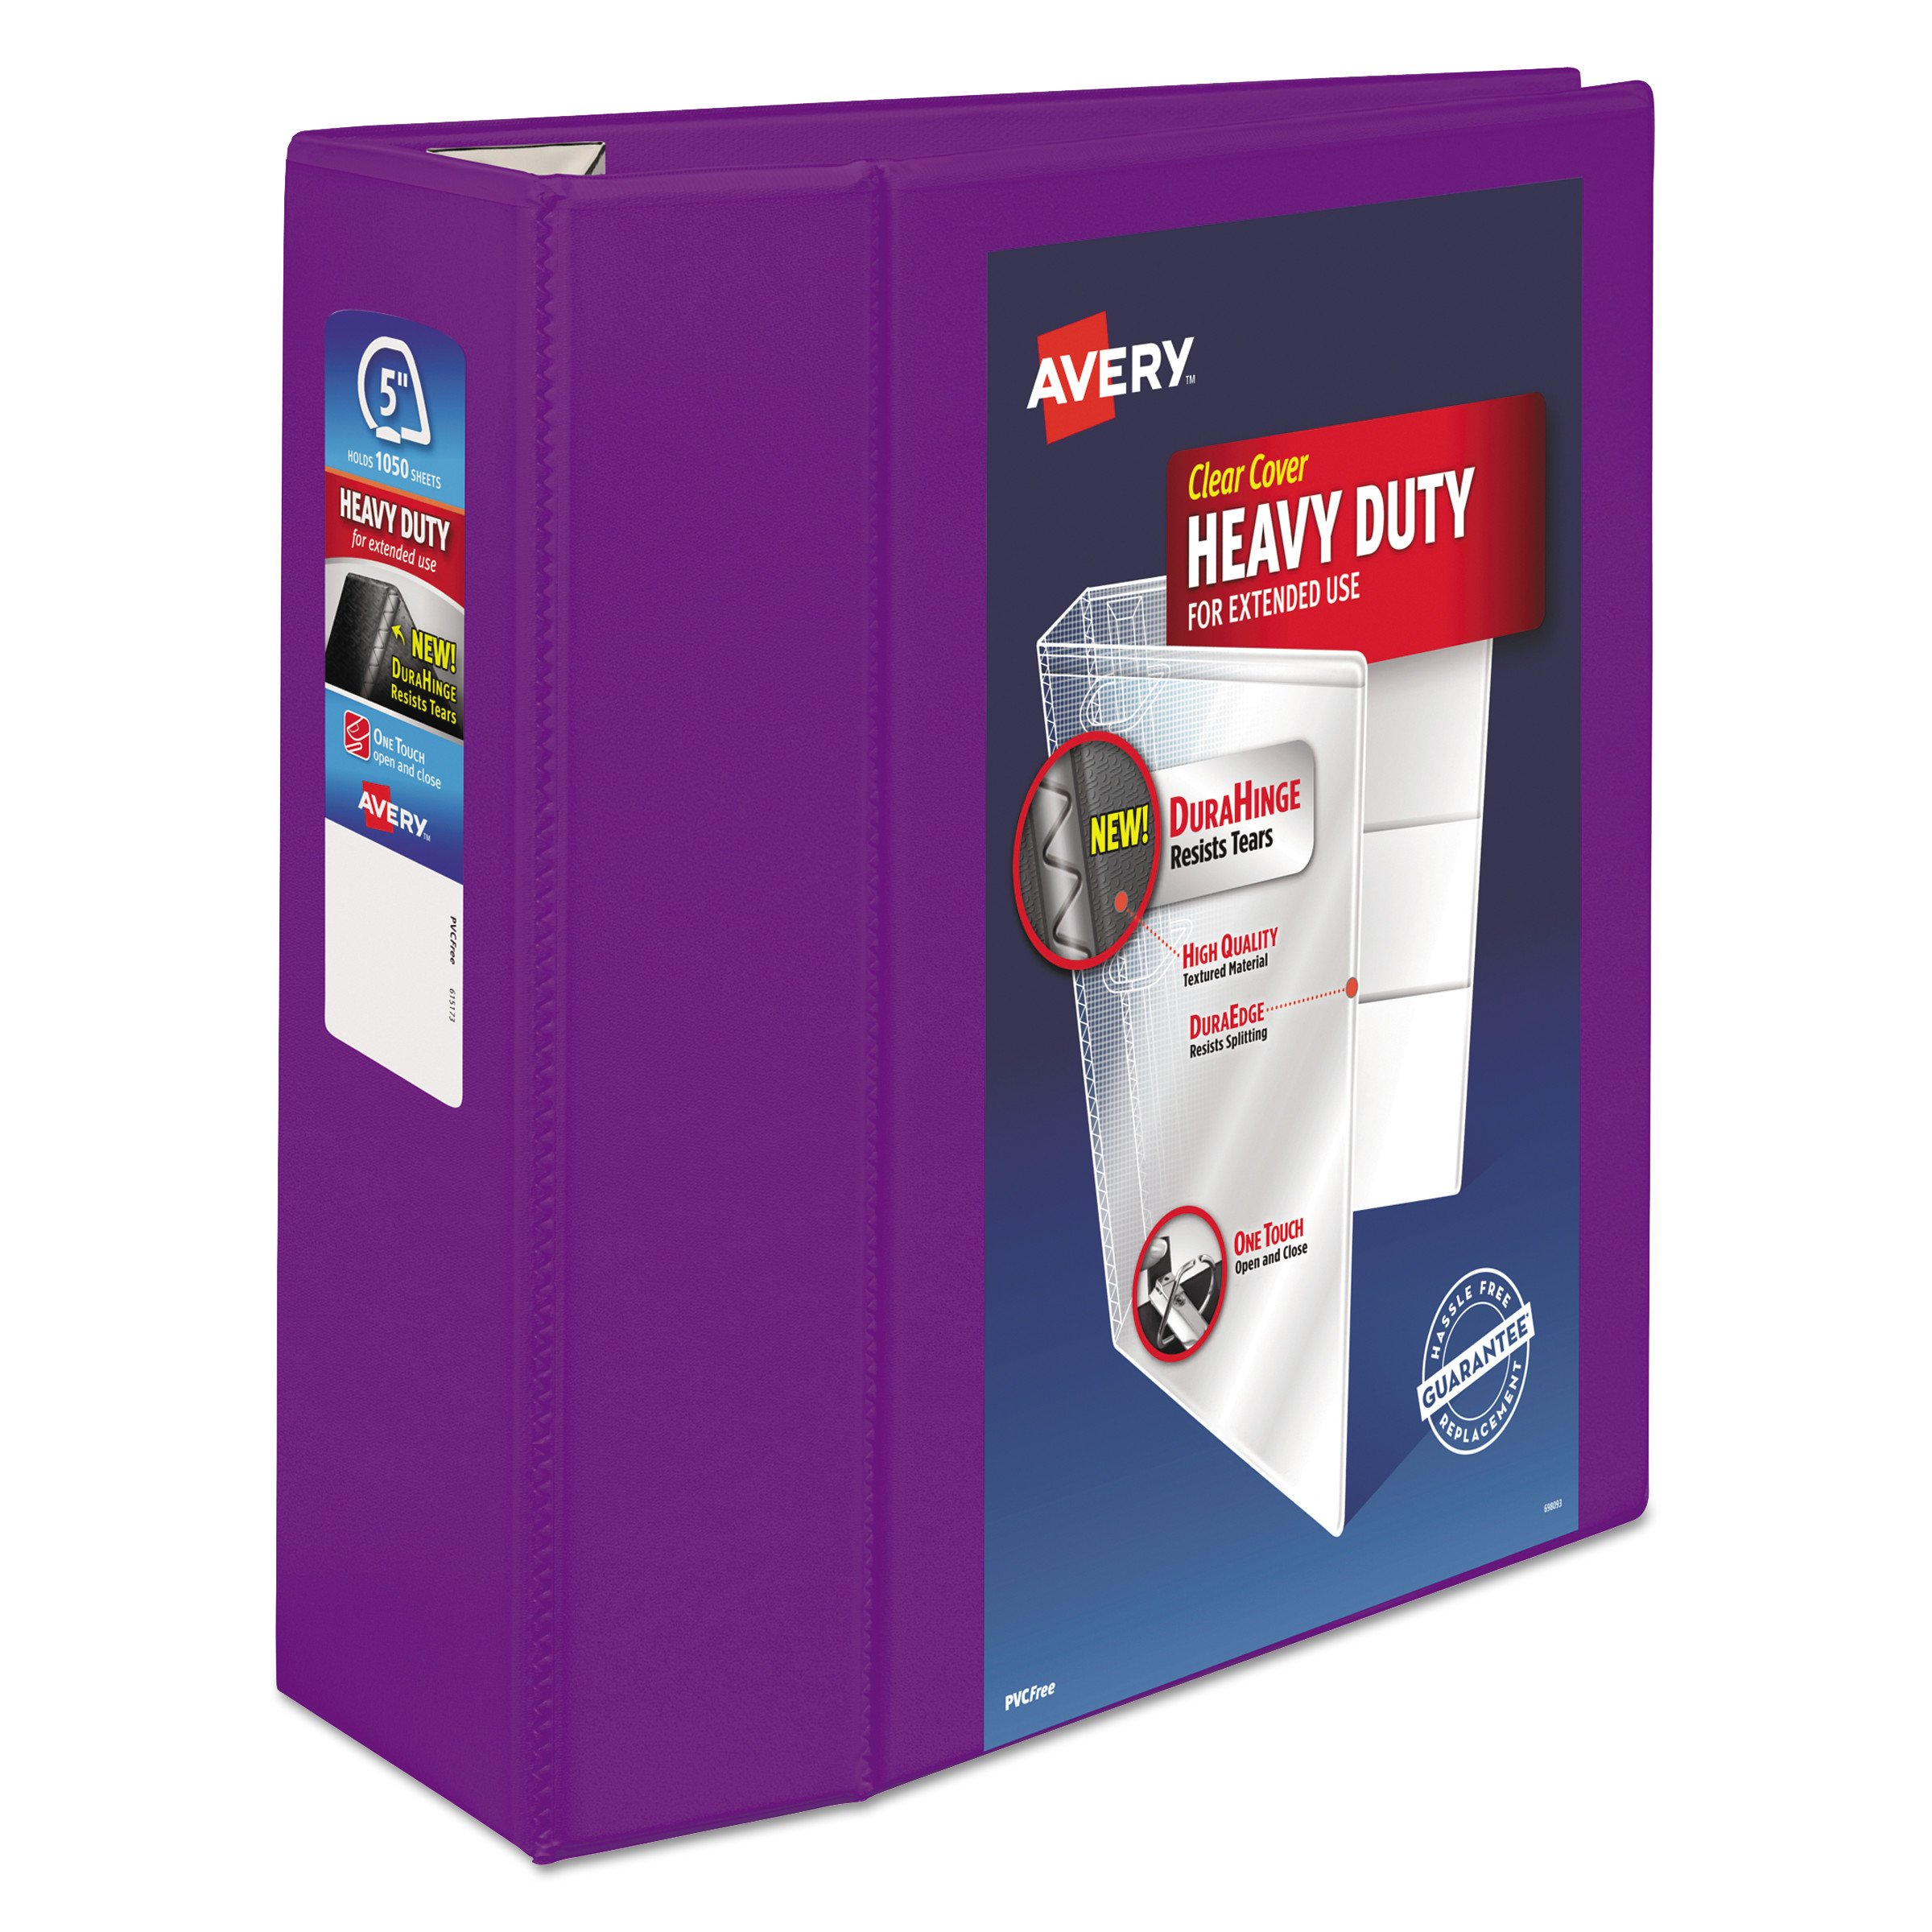 Avery Heavy Duty View 3 Ring Binder,5''  One Touch EZD Ring, Holds 8.5'' x 11'' Paper, 1 Purple Binder (79816) by AVERY